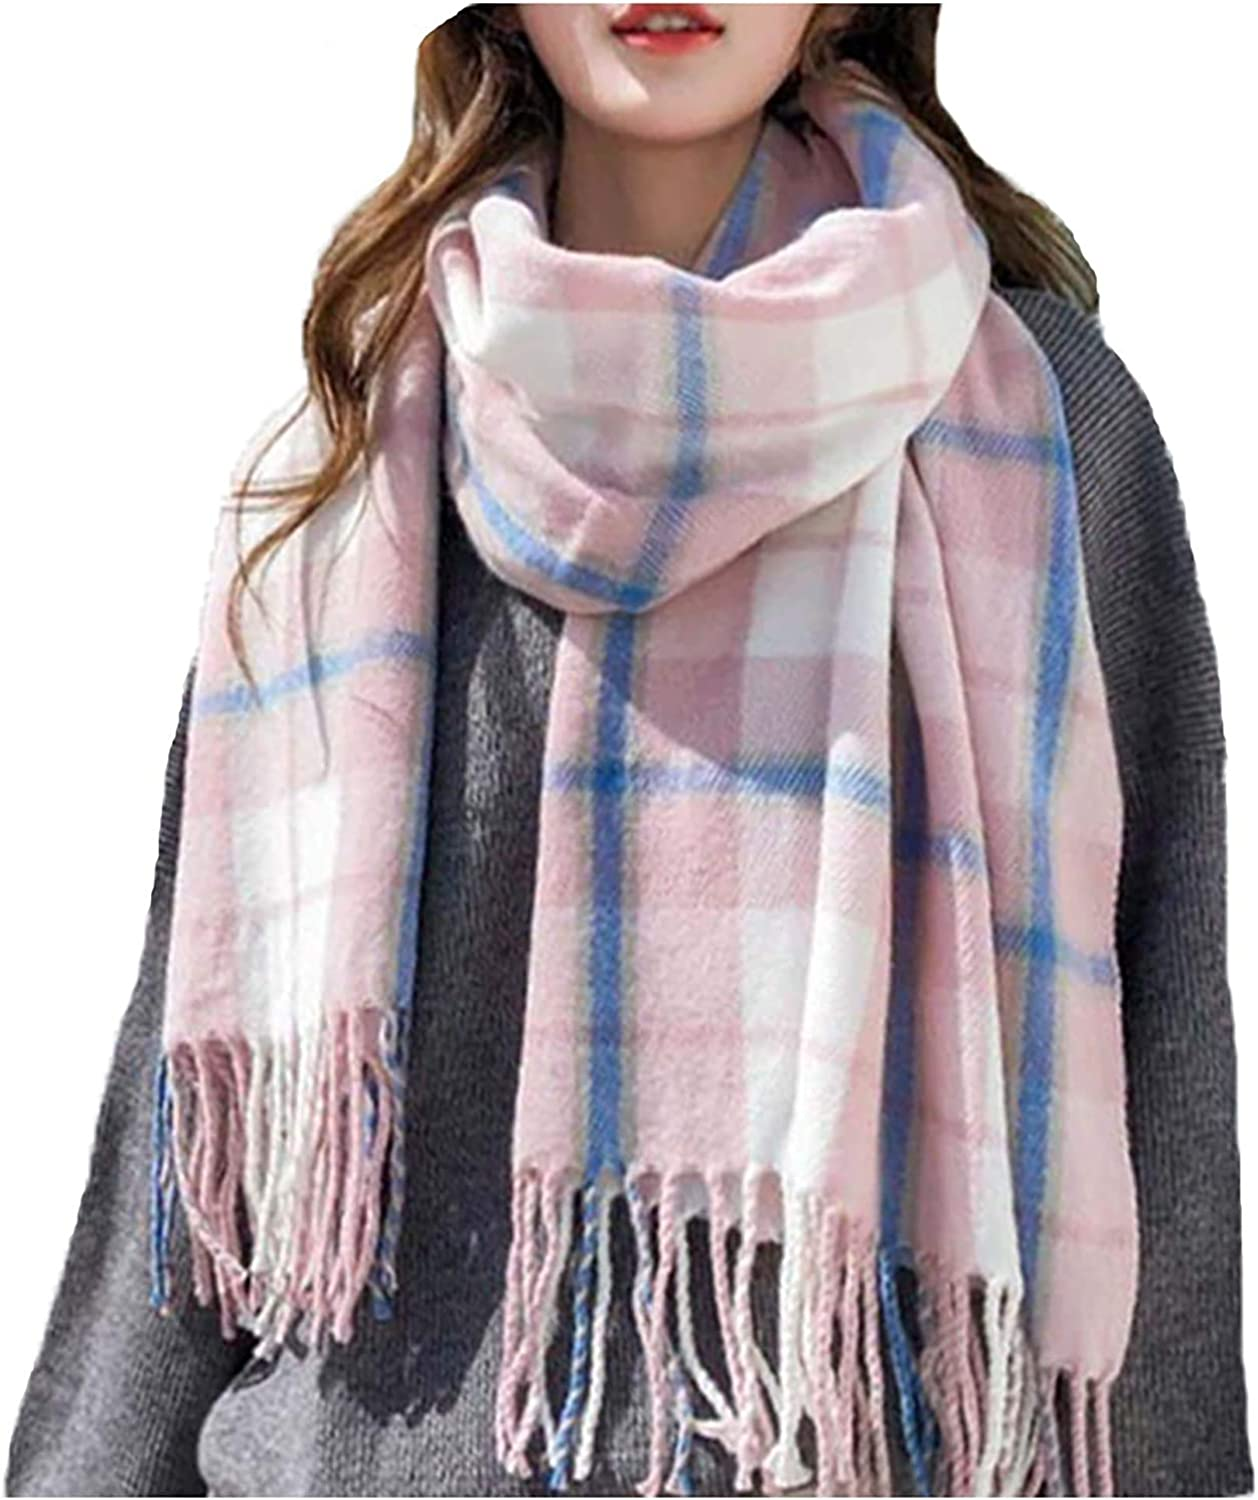 Men's Scarf Large Scarf Large Scarf MKLP Tassel Scarf Winter Ladies Scarf Large Warm Shawl Plaid Scarf Large Shawl Keep Warm and Prevent Cold For Women